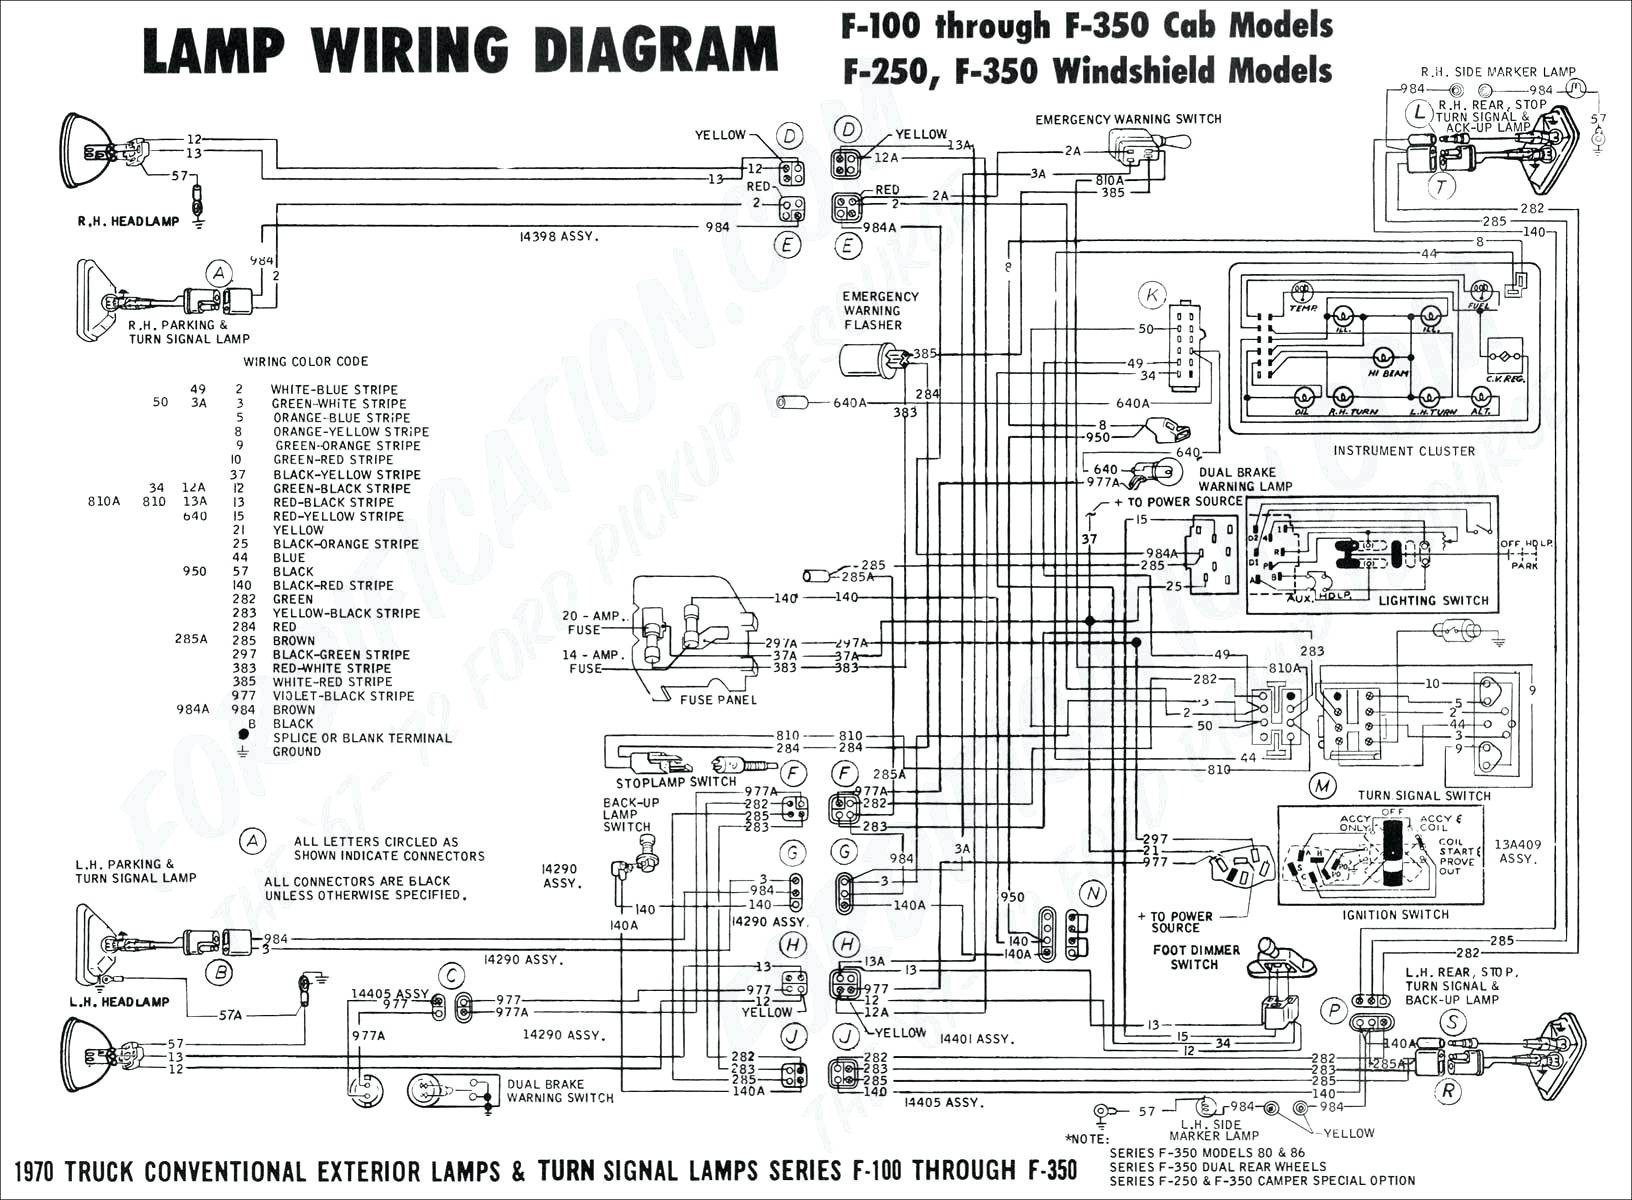 Back Up Light Wiring Diagram 2005 Grand Marquis Noma Garden Tractor Wiring Diagram 1991rx7 Periihh Jeanjaures37 Fr